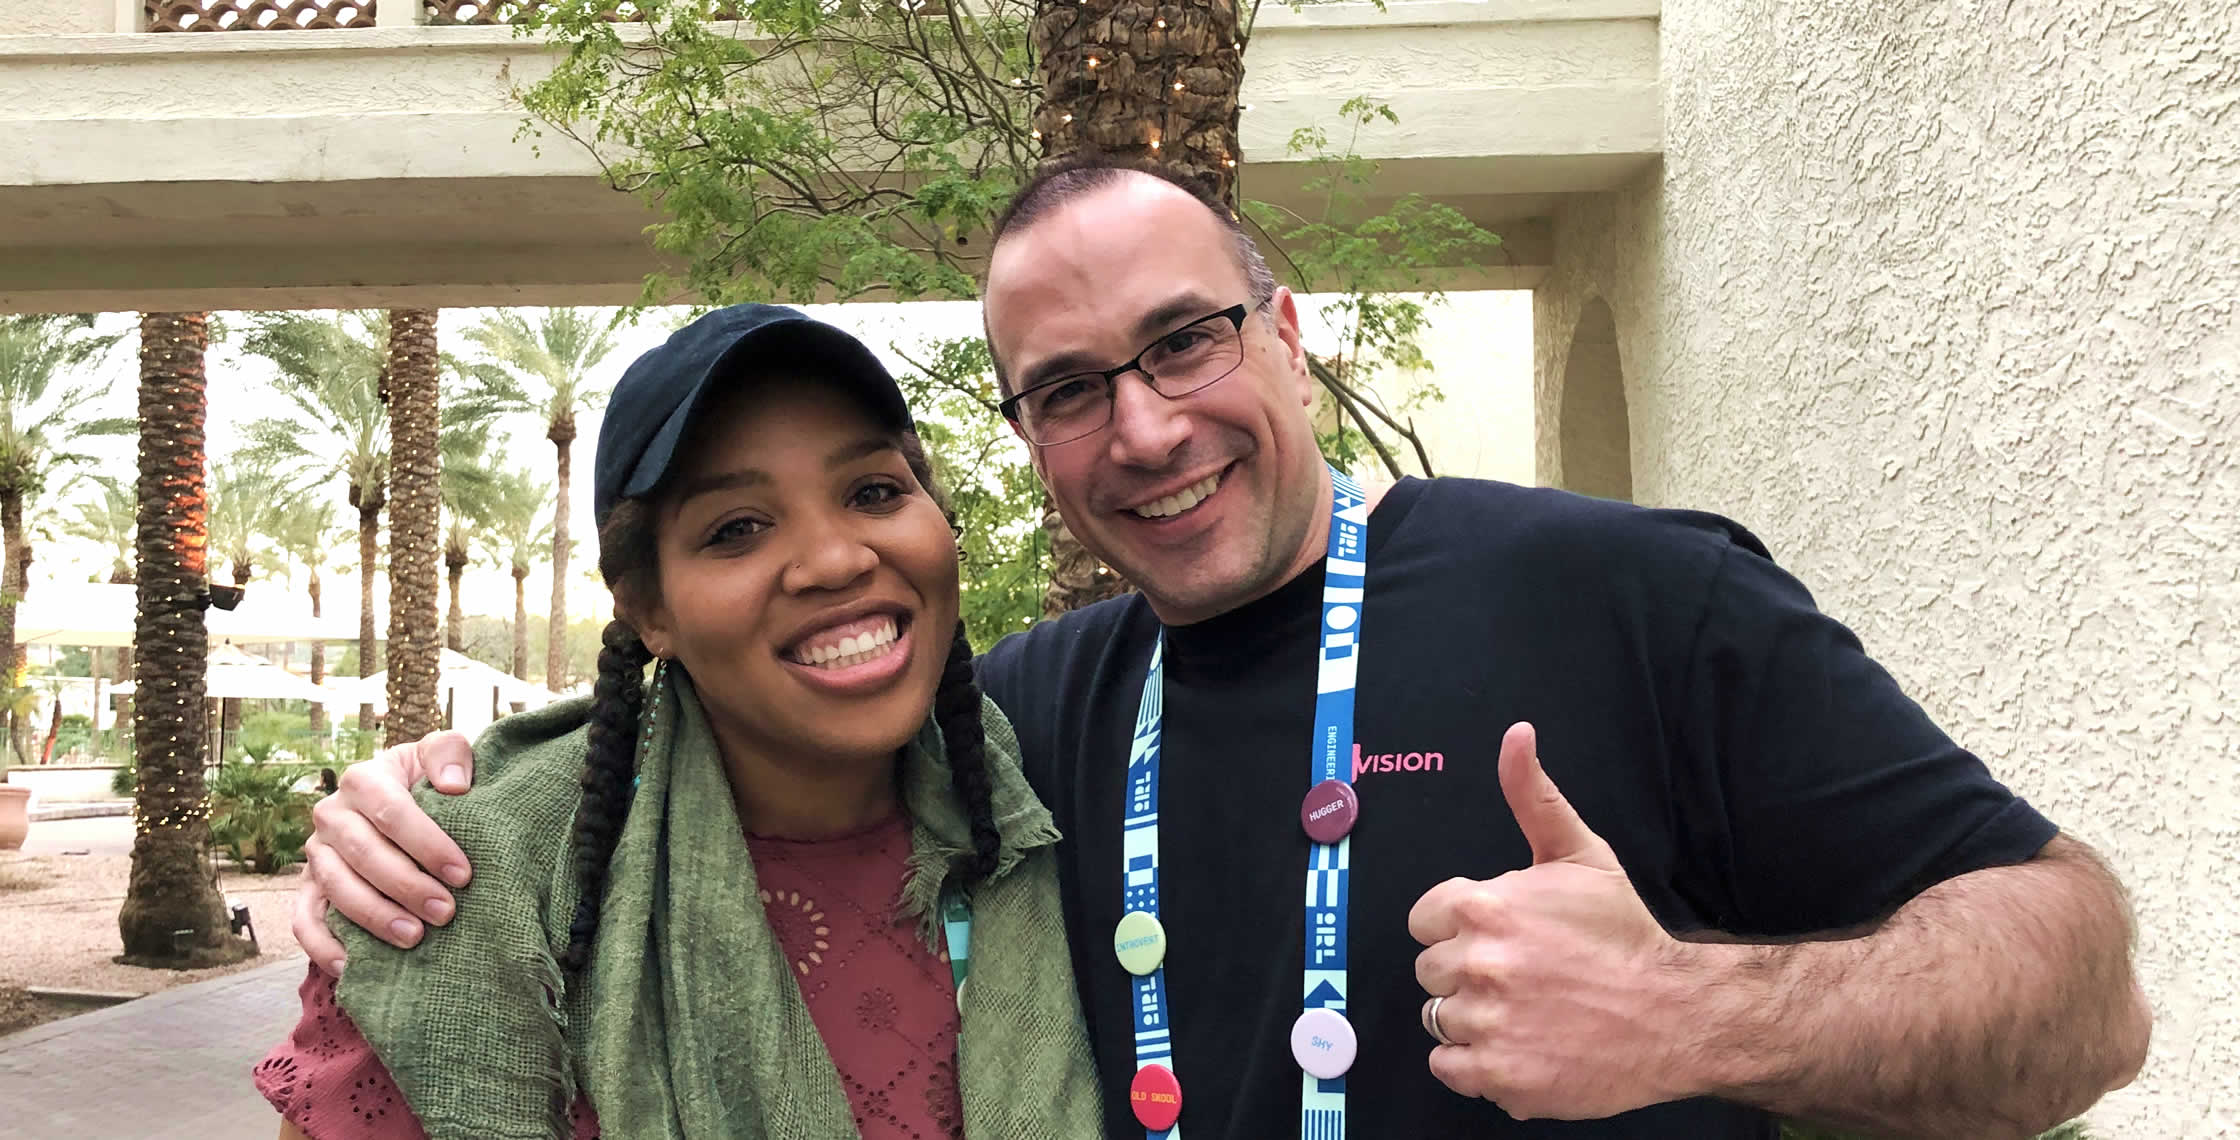 Ben Nadel at InVision In Real Life (IRL) 2019 (Phoenix, AZ) with: Erica Simmons